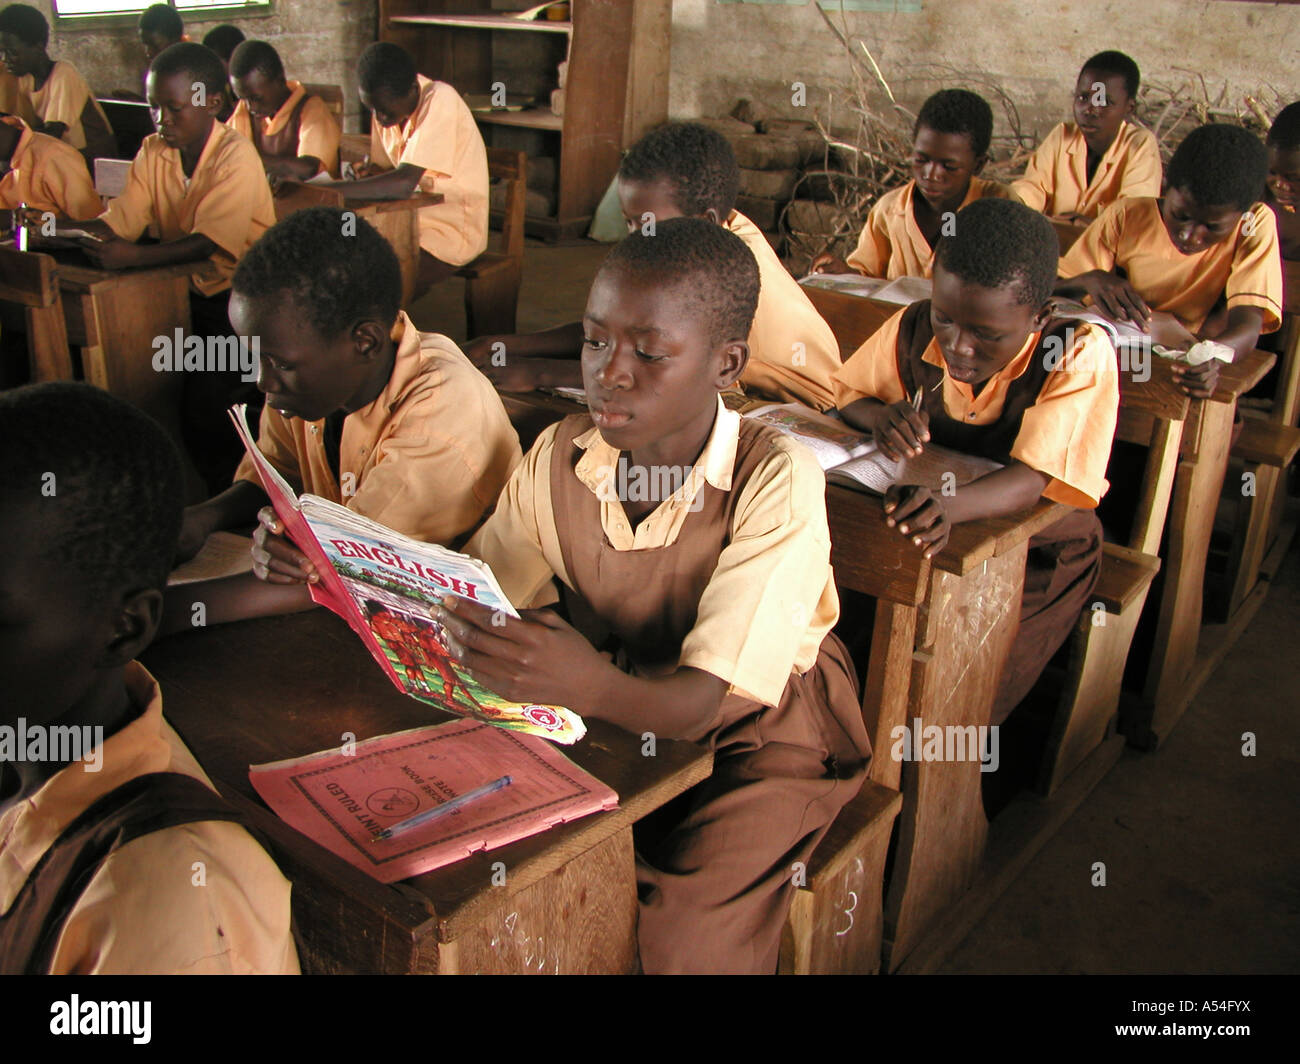 Painet hn2248 7830 children boys ghana school supported by crs bolgatanga country developing nation less economically - Stock Image